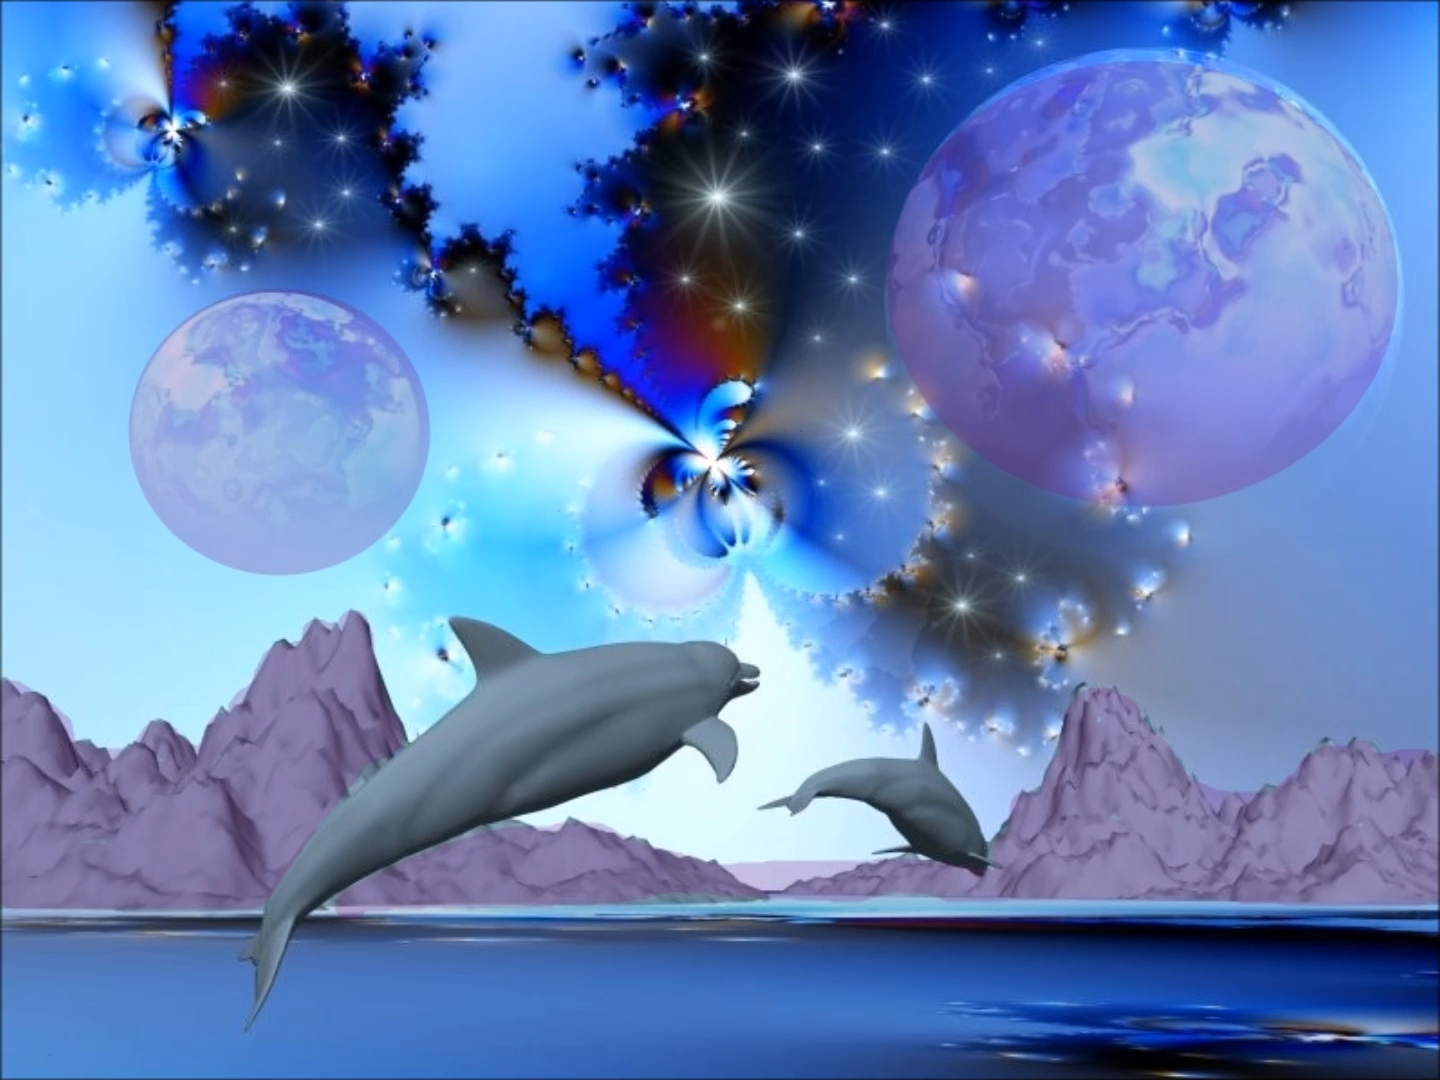 [dolphins_are_celestial_beings.2]